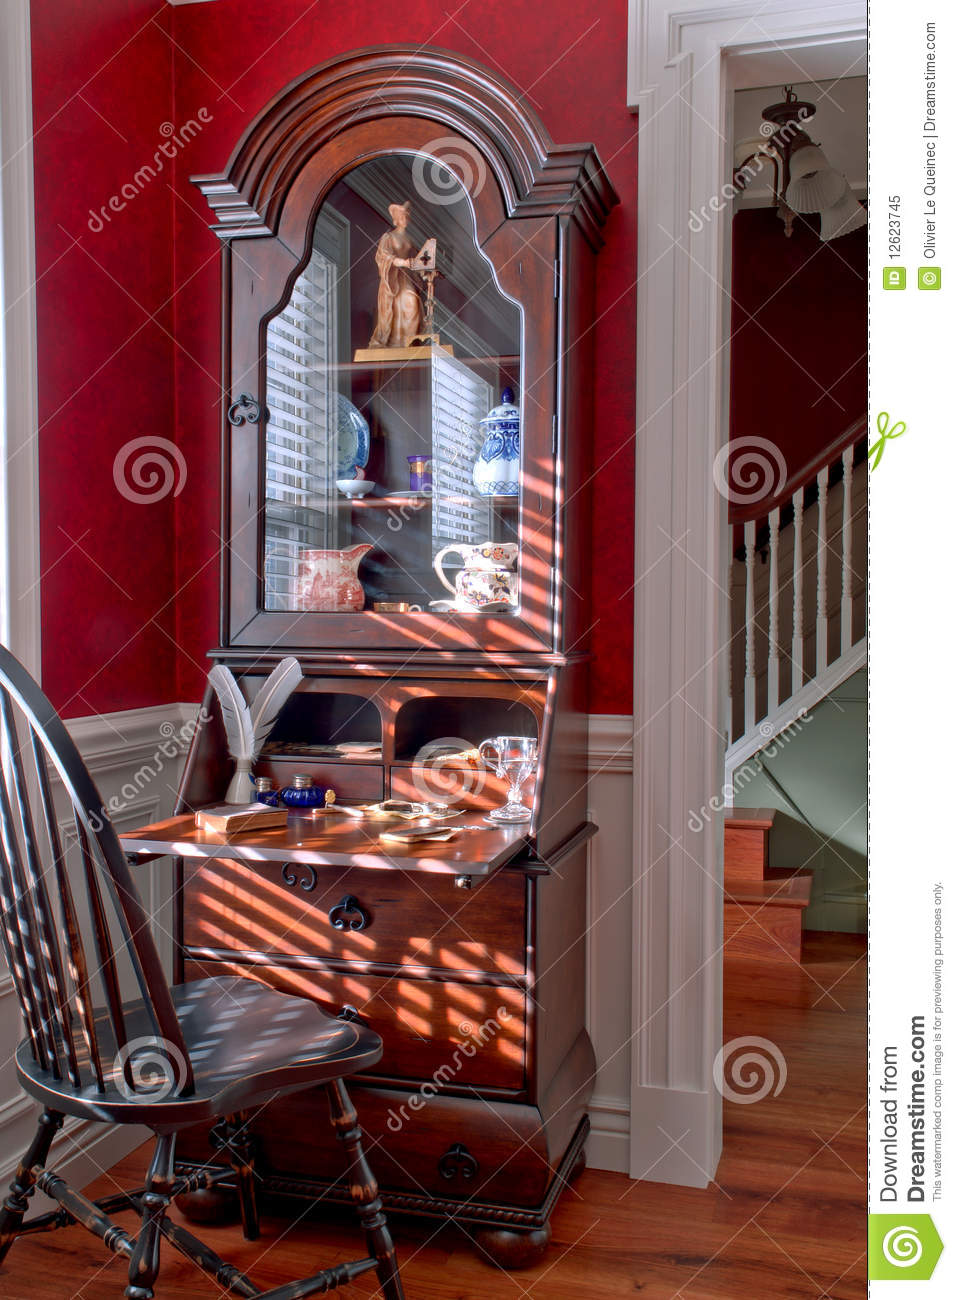 Old colonial american style antique house interior stock for American style house interior